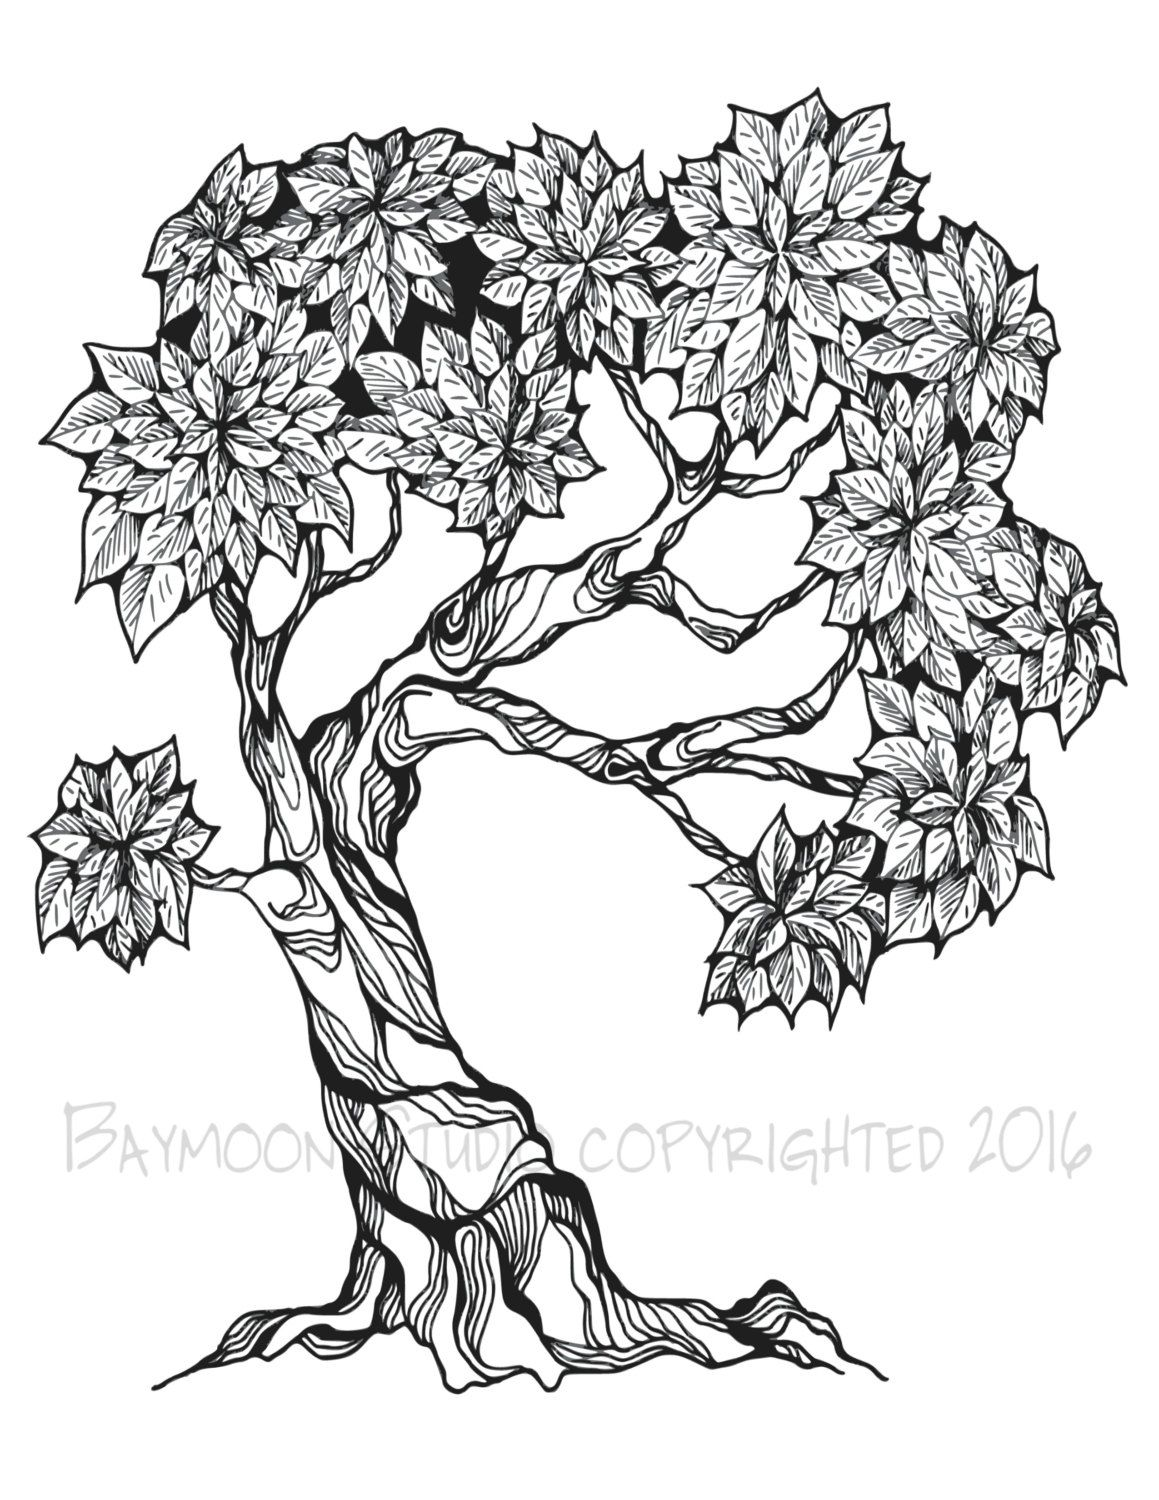 Bonsai Tree Coloring Page Printable Coloring By Baymoonstudio